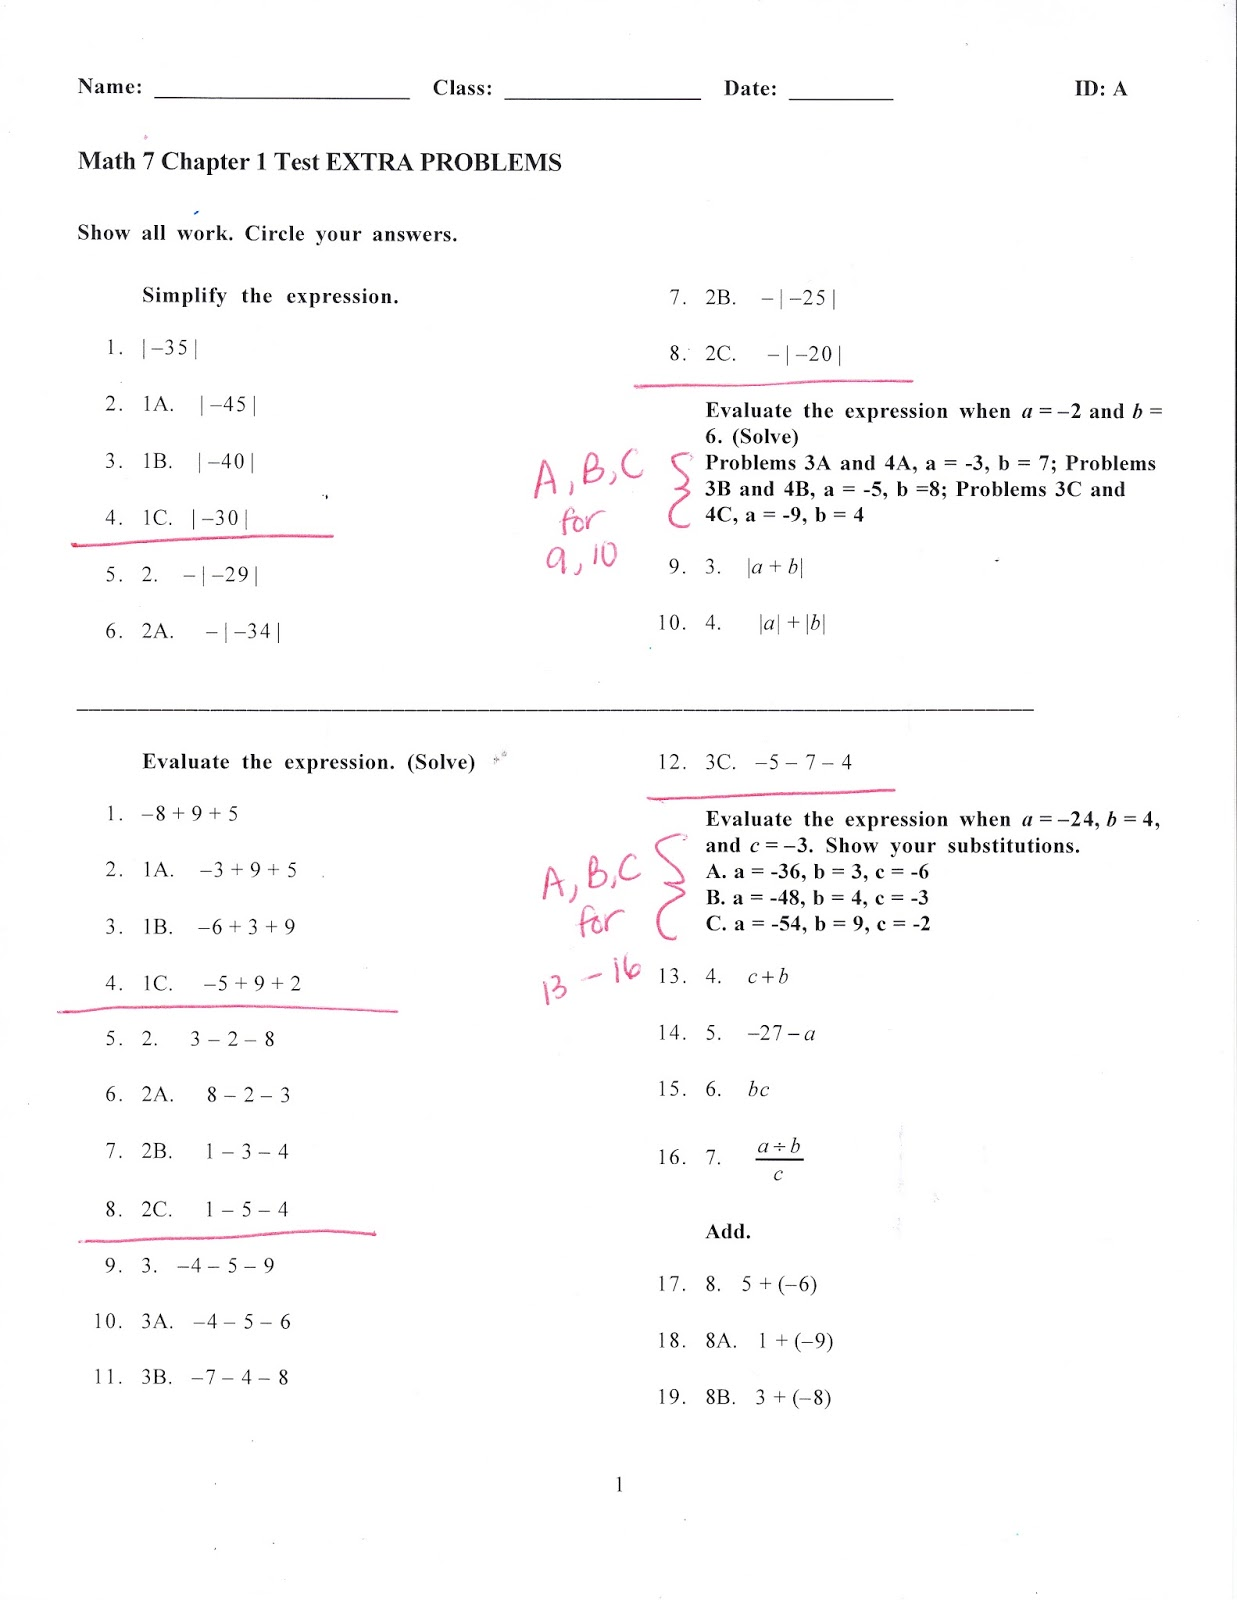 Ms Jean S Classroom Blog Math 7 Chapter 1 Test Extra